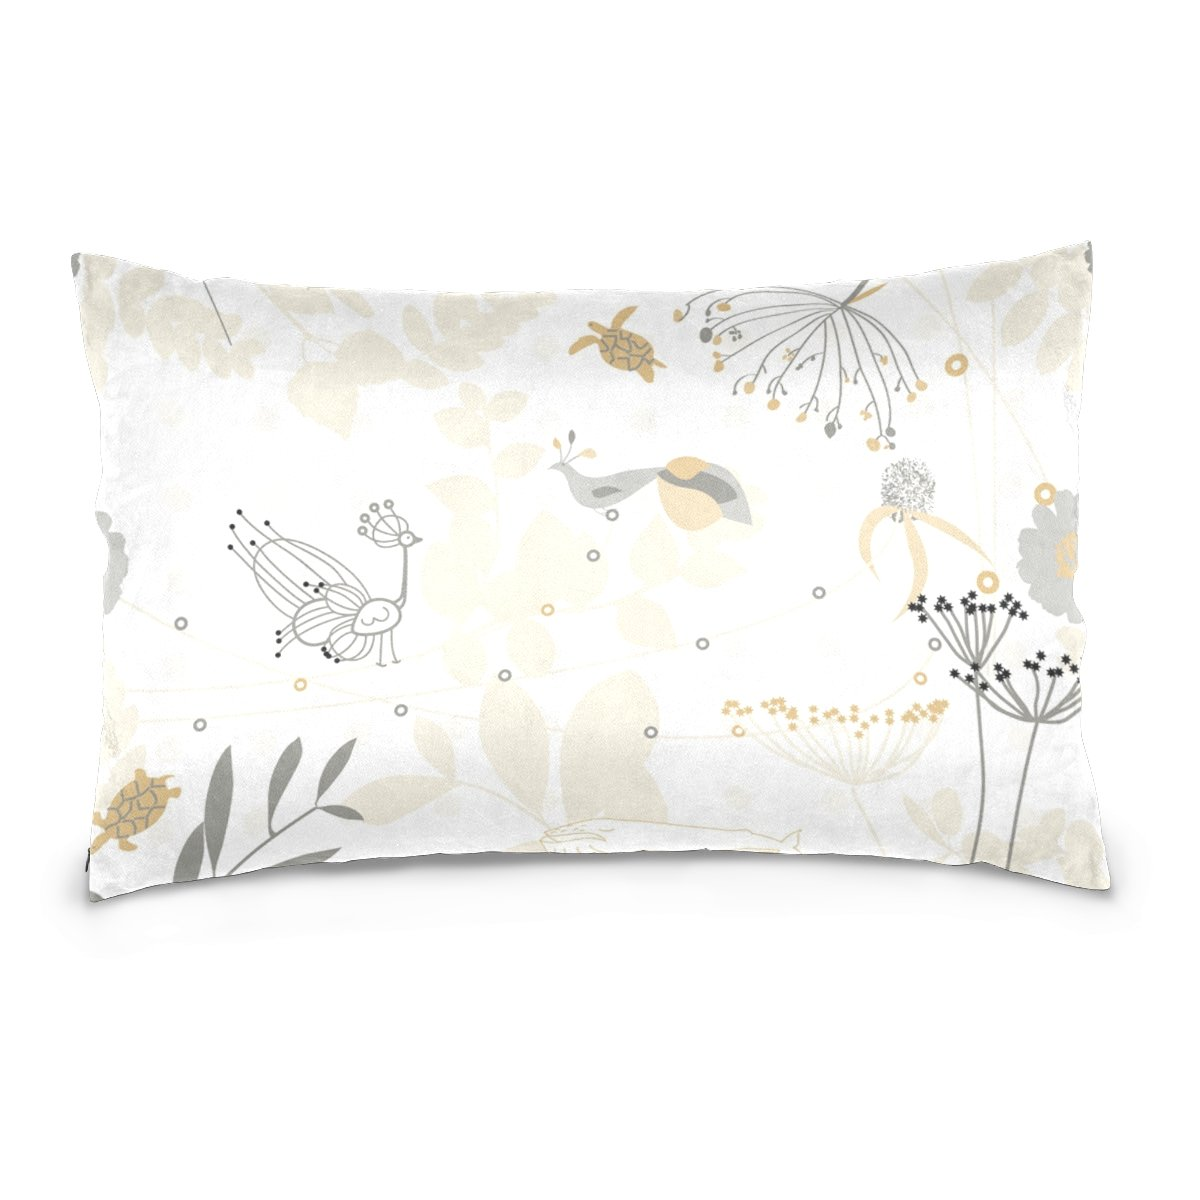 THENAHOME Pillow Covers Pillow Protectors Bed Bug Dust Mite Resistant Standard Pillow Cases Cotton Sateen Allergy Proof Soft Quality Covers with Abstract Animals And Floral for Bedding